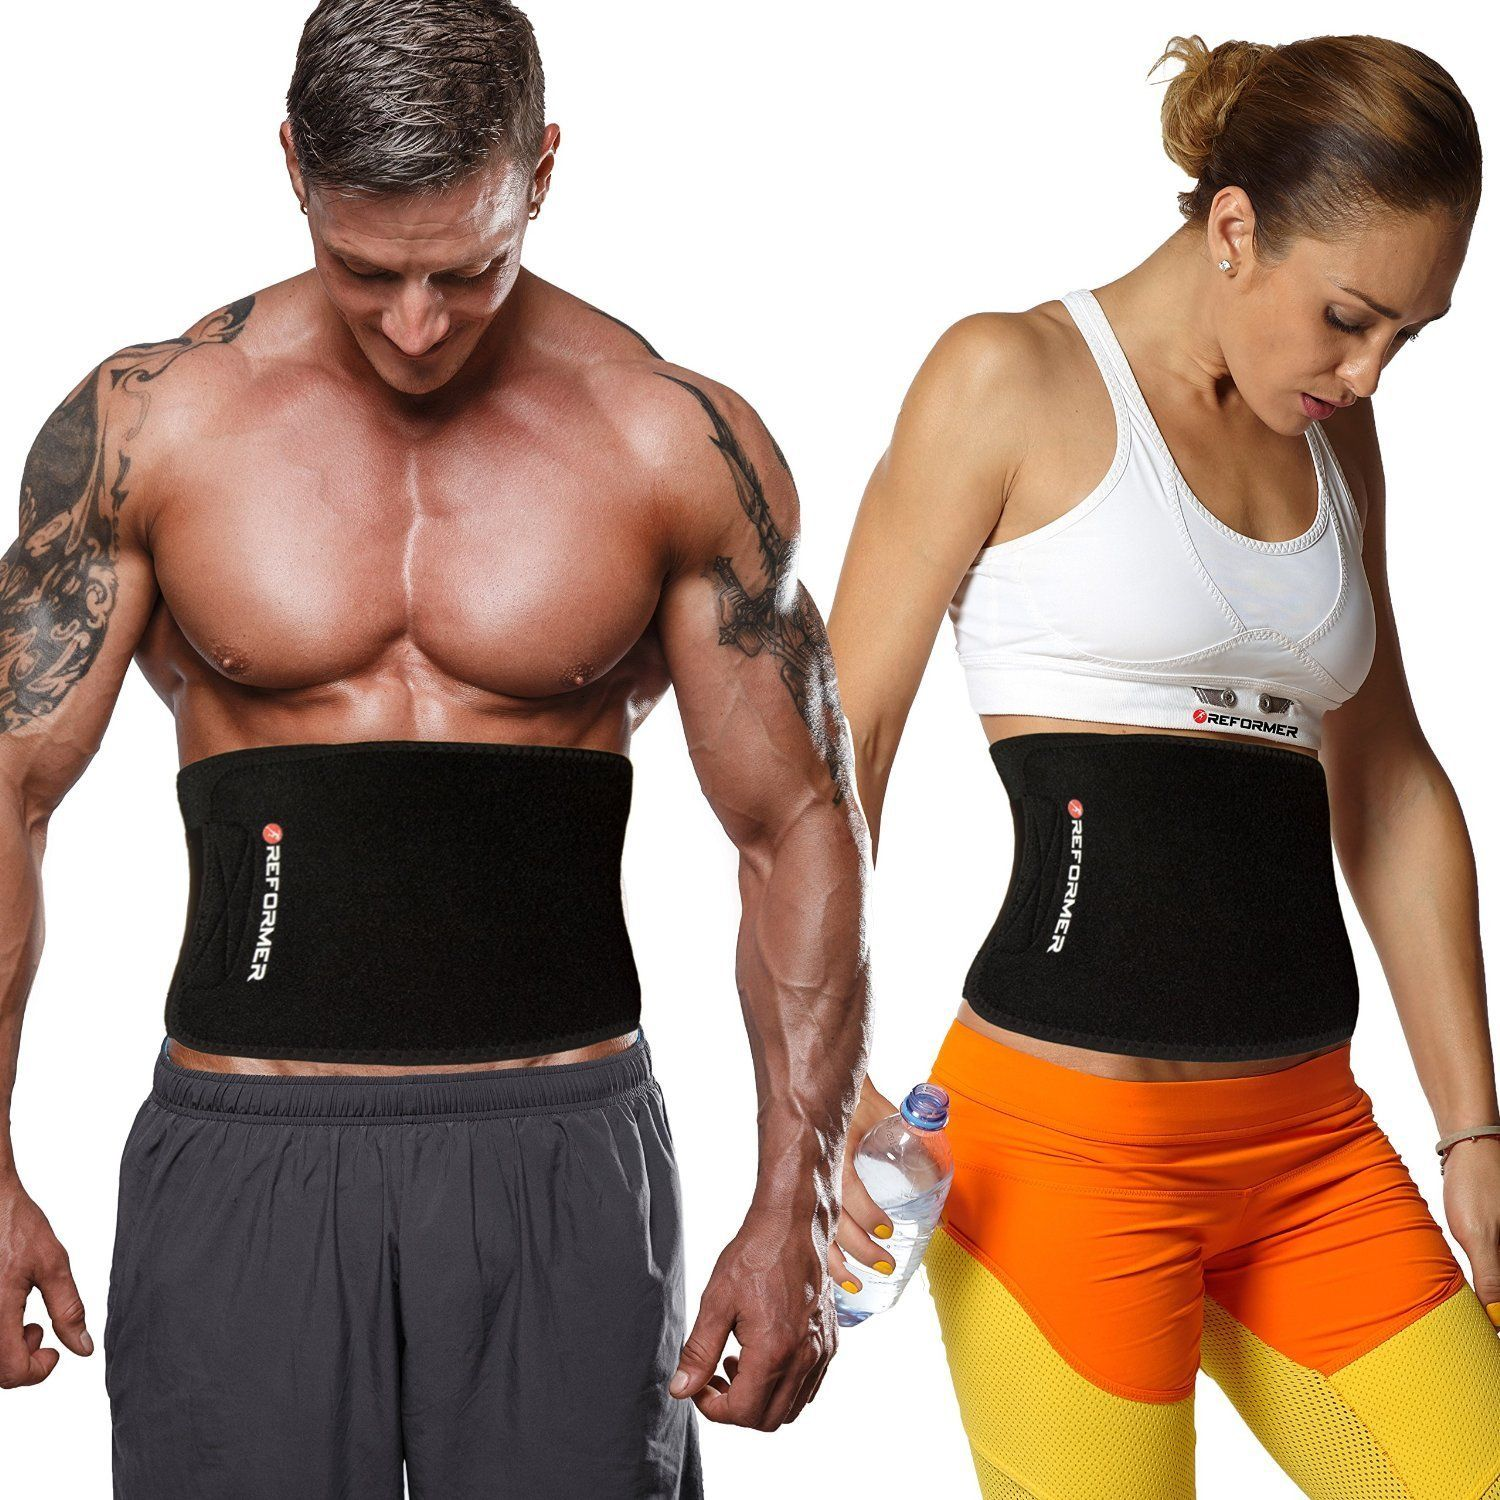 41+ What do waist trimmers do ideas in 2021